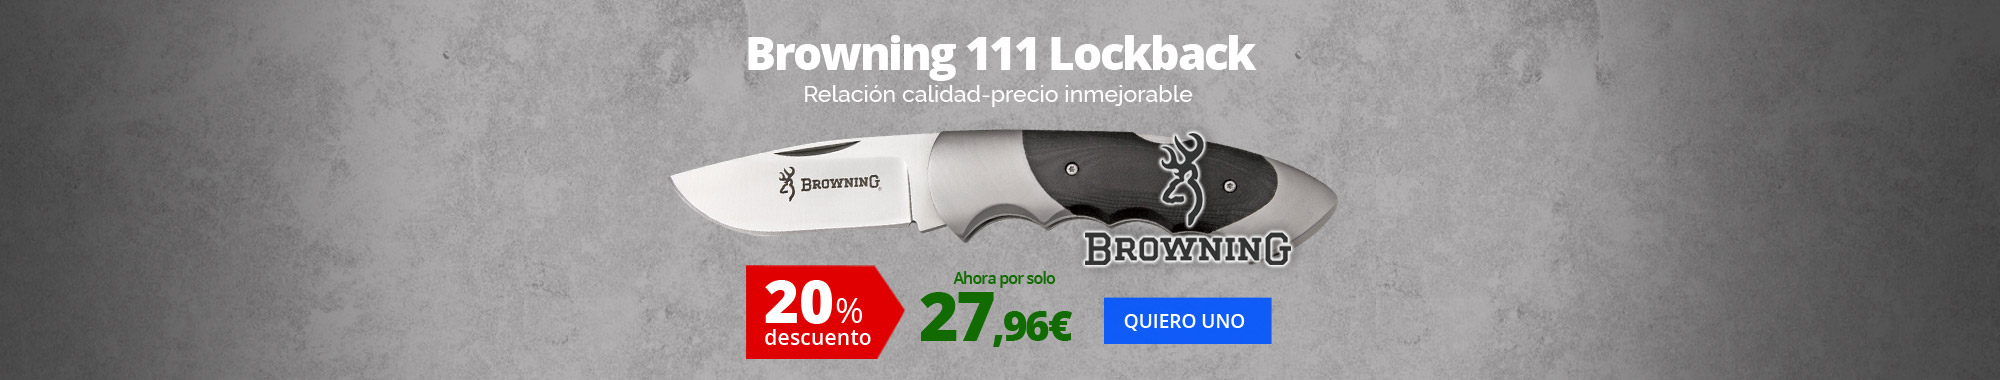 20% dto Browning 111 Lockback